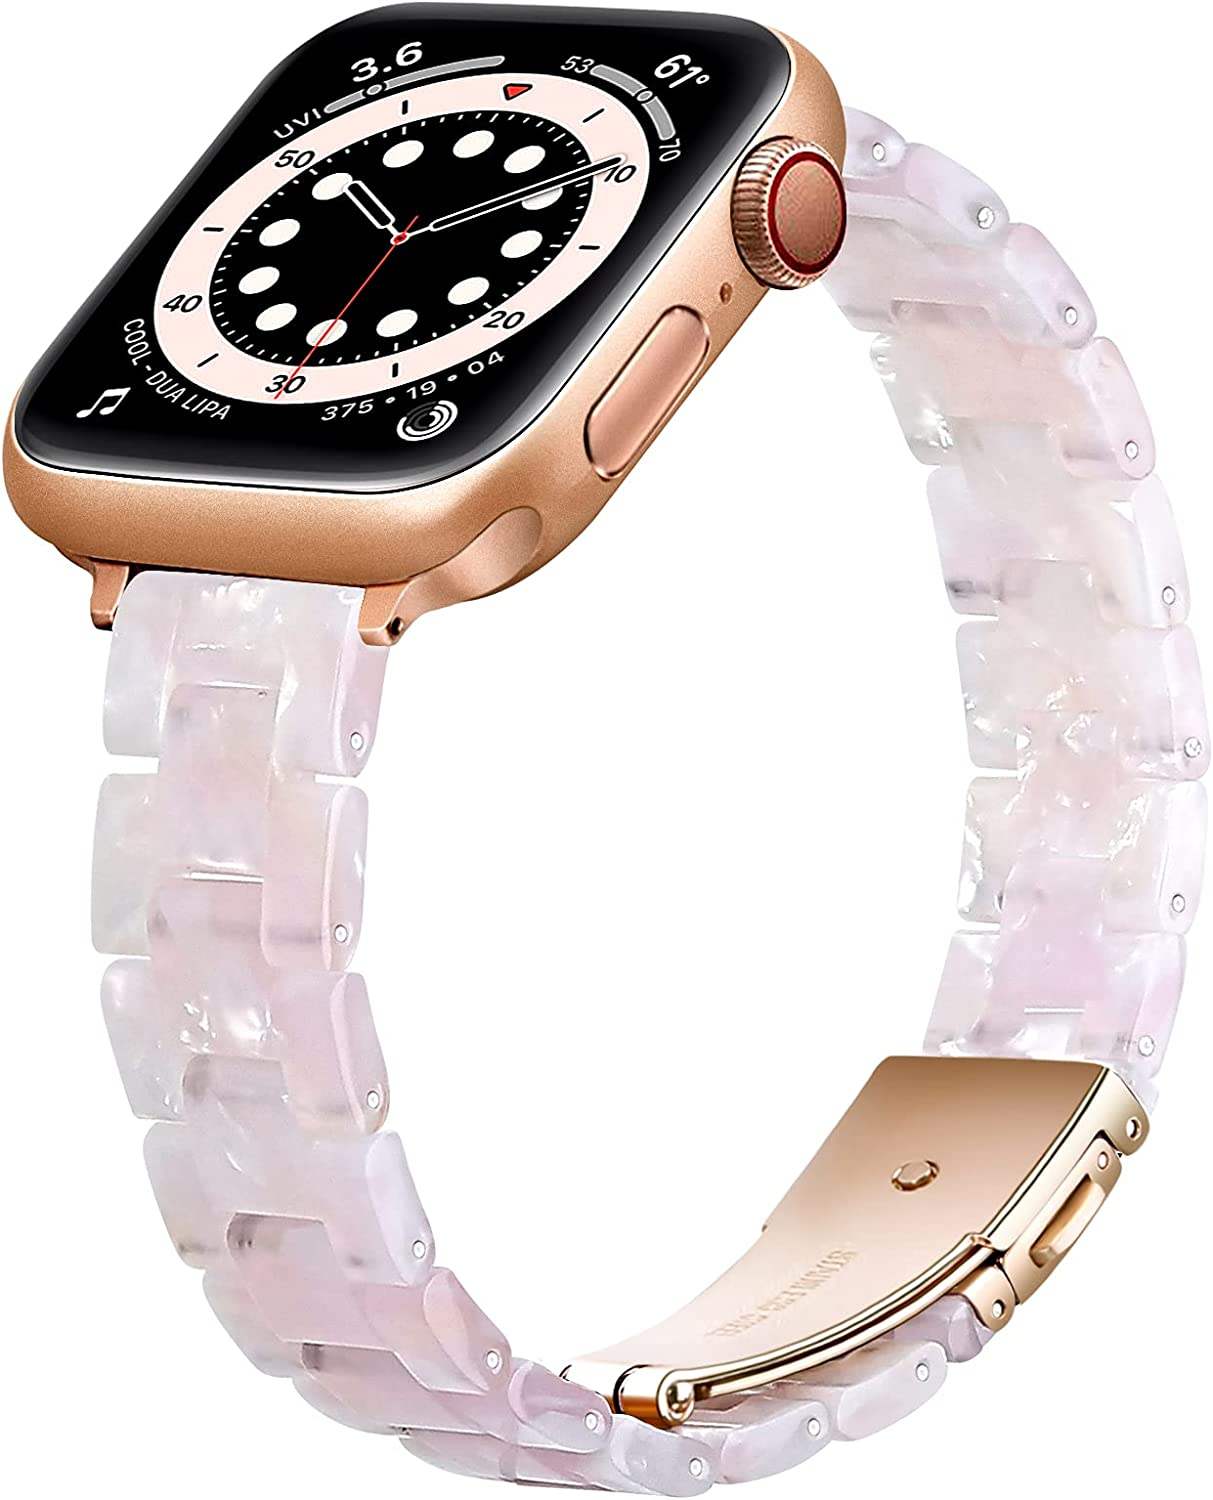 OUHENG Slim Resin Strap Compatible with Apple Watch Bands 40mm 38mm 44mm 42mm, Lightweight Thin Band with Metal Buckle for iWatch SE Series 6/5/4/3/2/1 (Pink Flower/Rose Gold, 40mm 38mm)